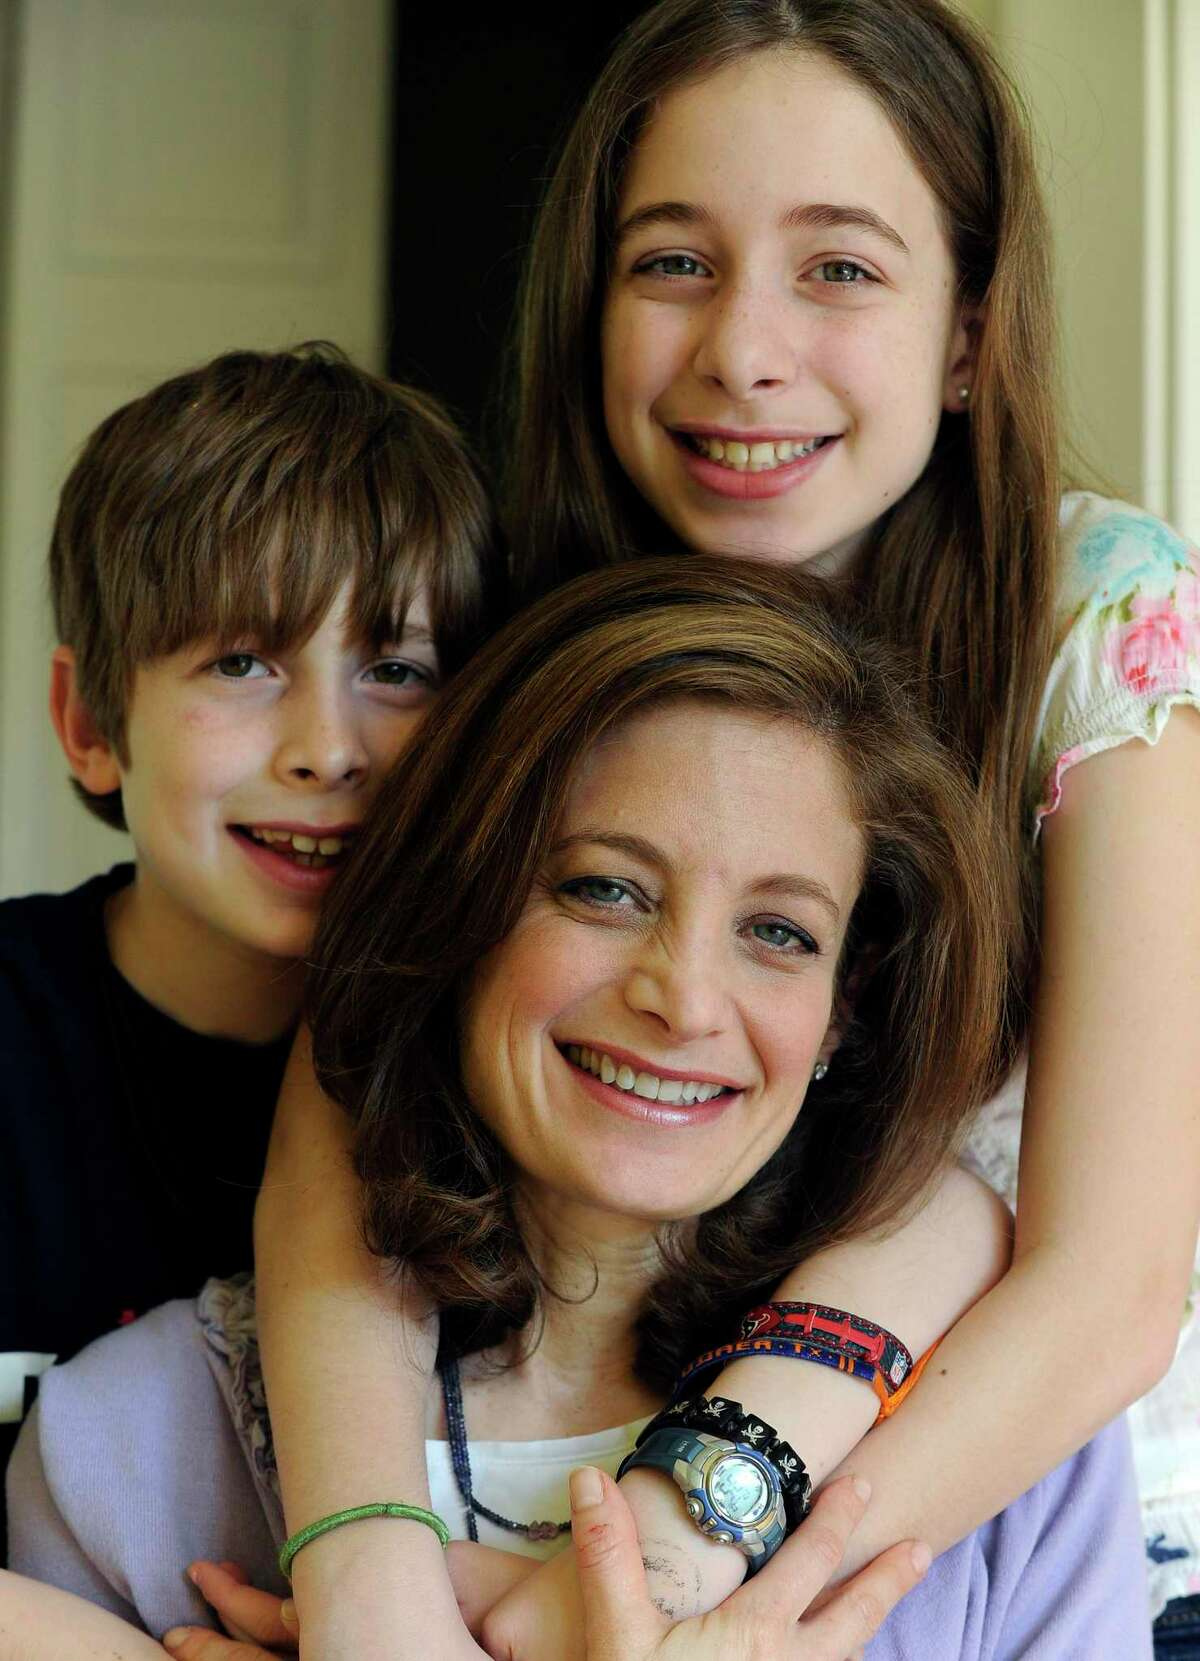 Bettina Siegel, center, poses with her son Asher and daughter Lily at their home in Houston in 2012.